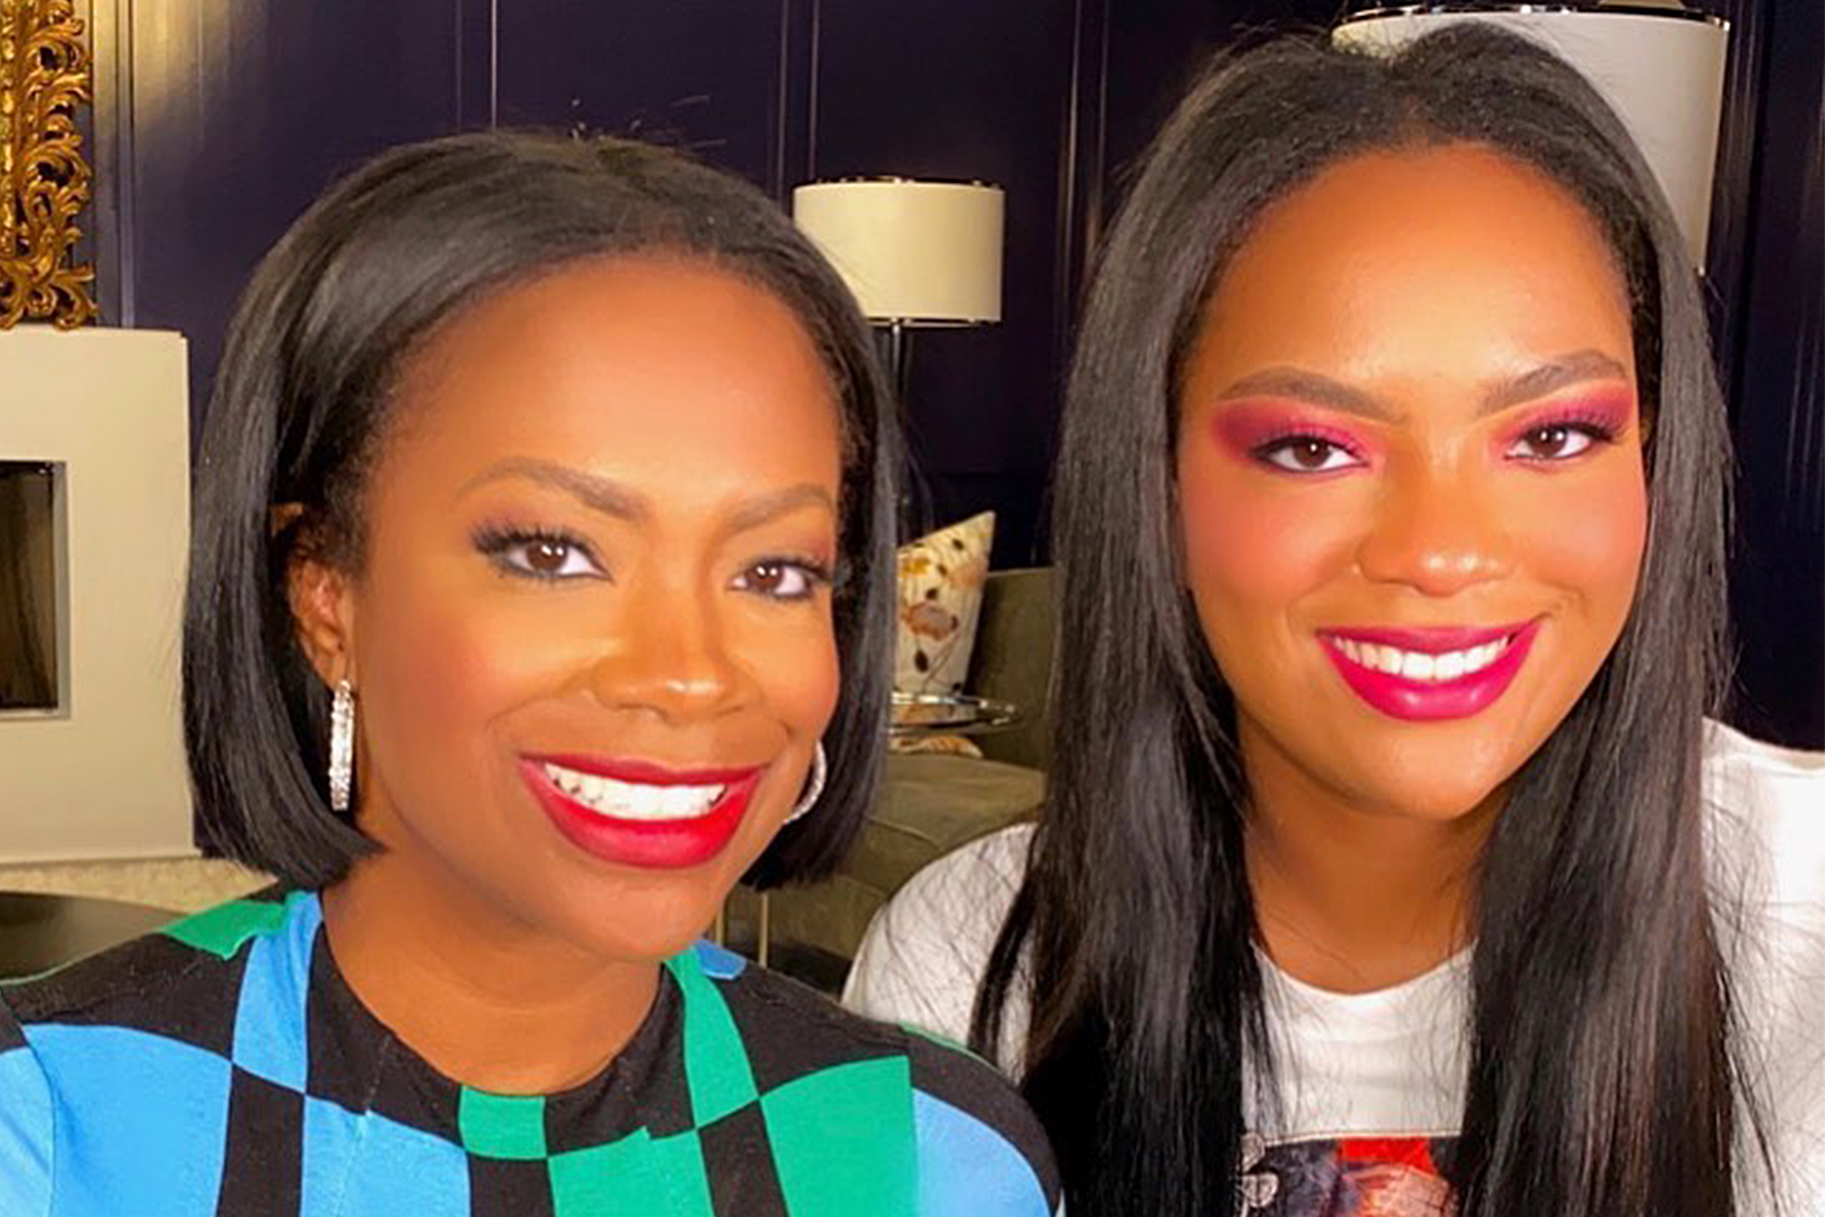 Kandi Burruss' Daughter, Riley Burruss Gets Ready To Go To College - See The Video